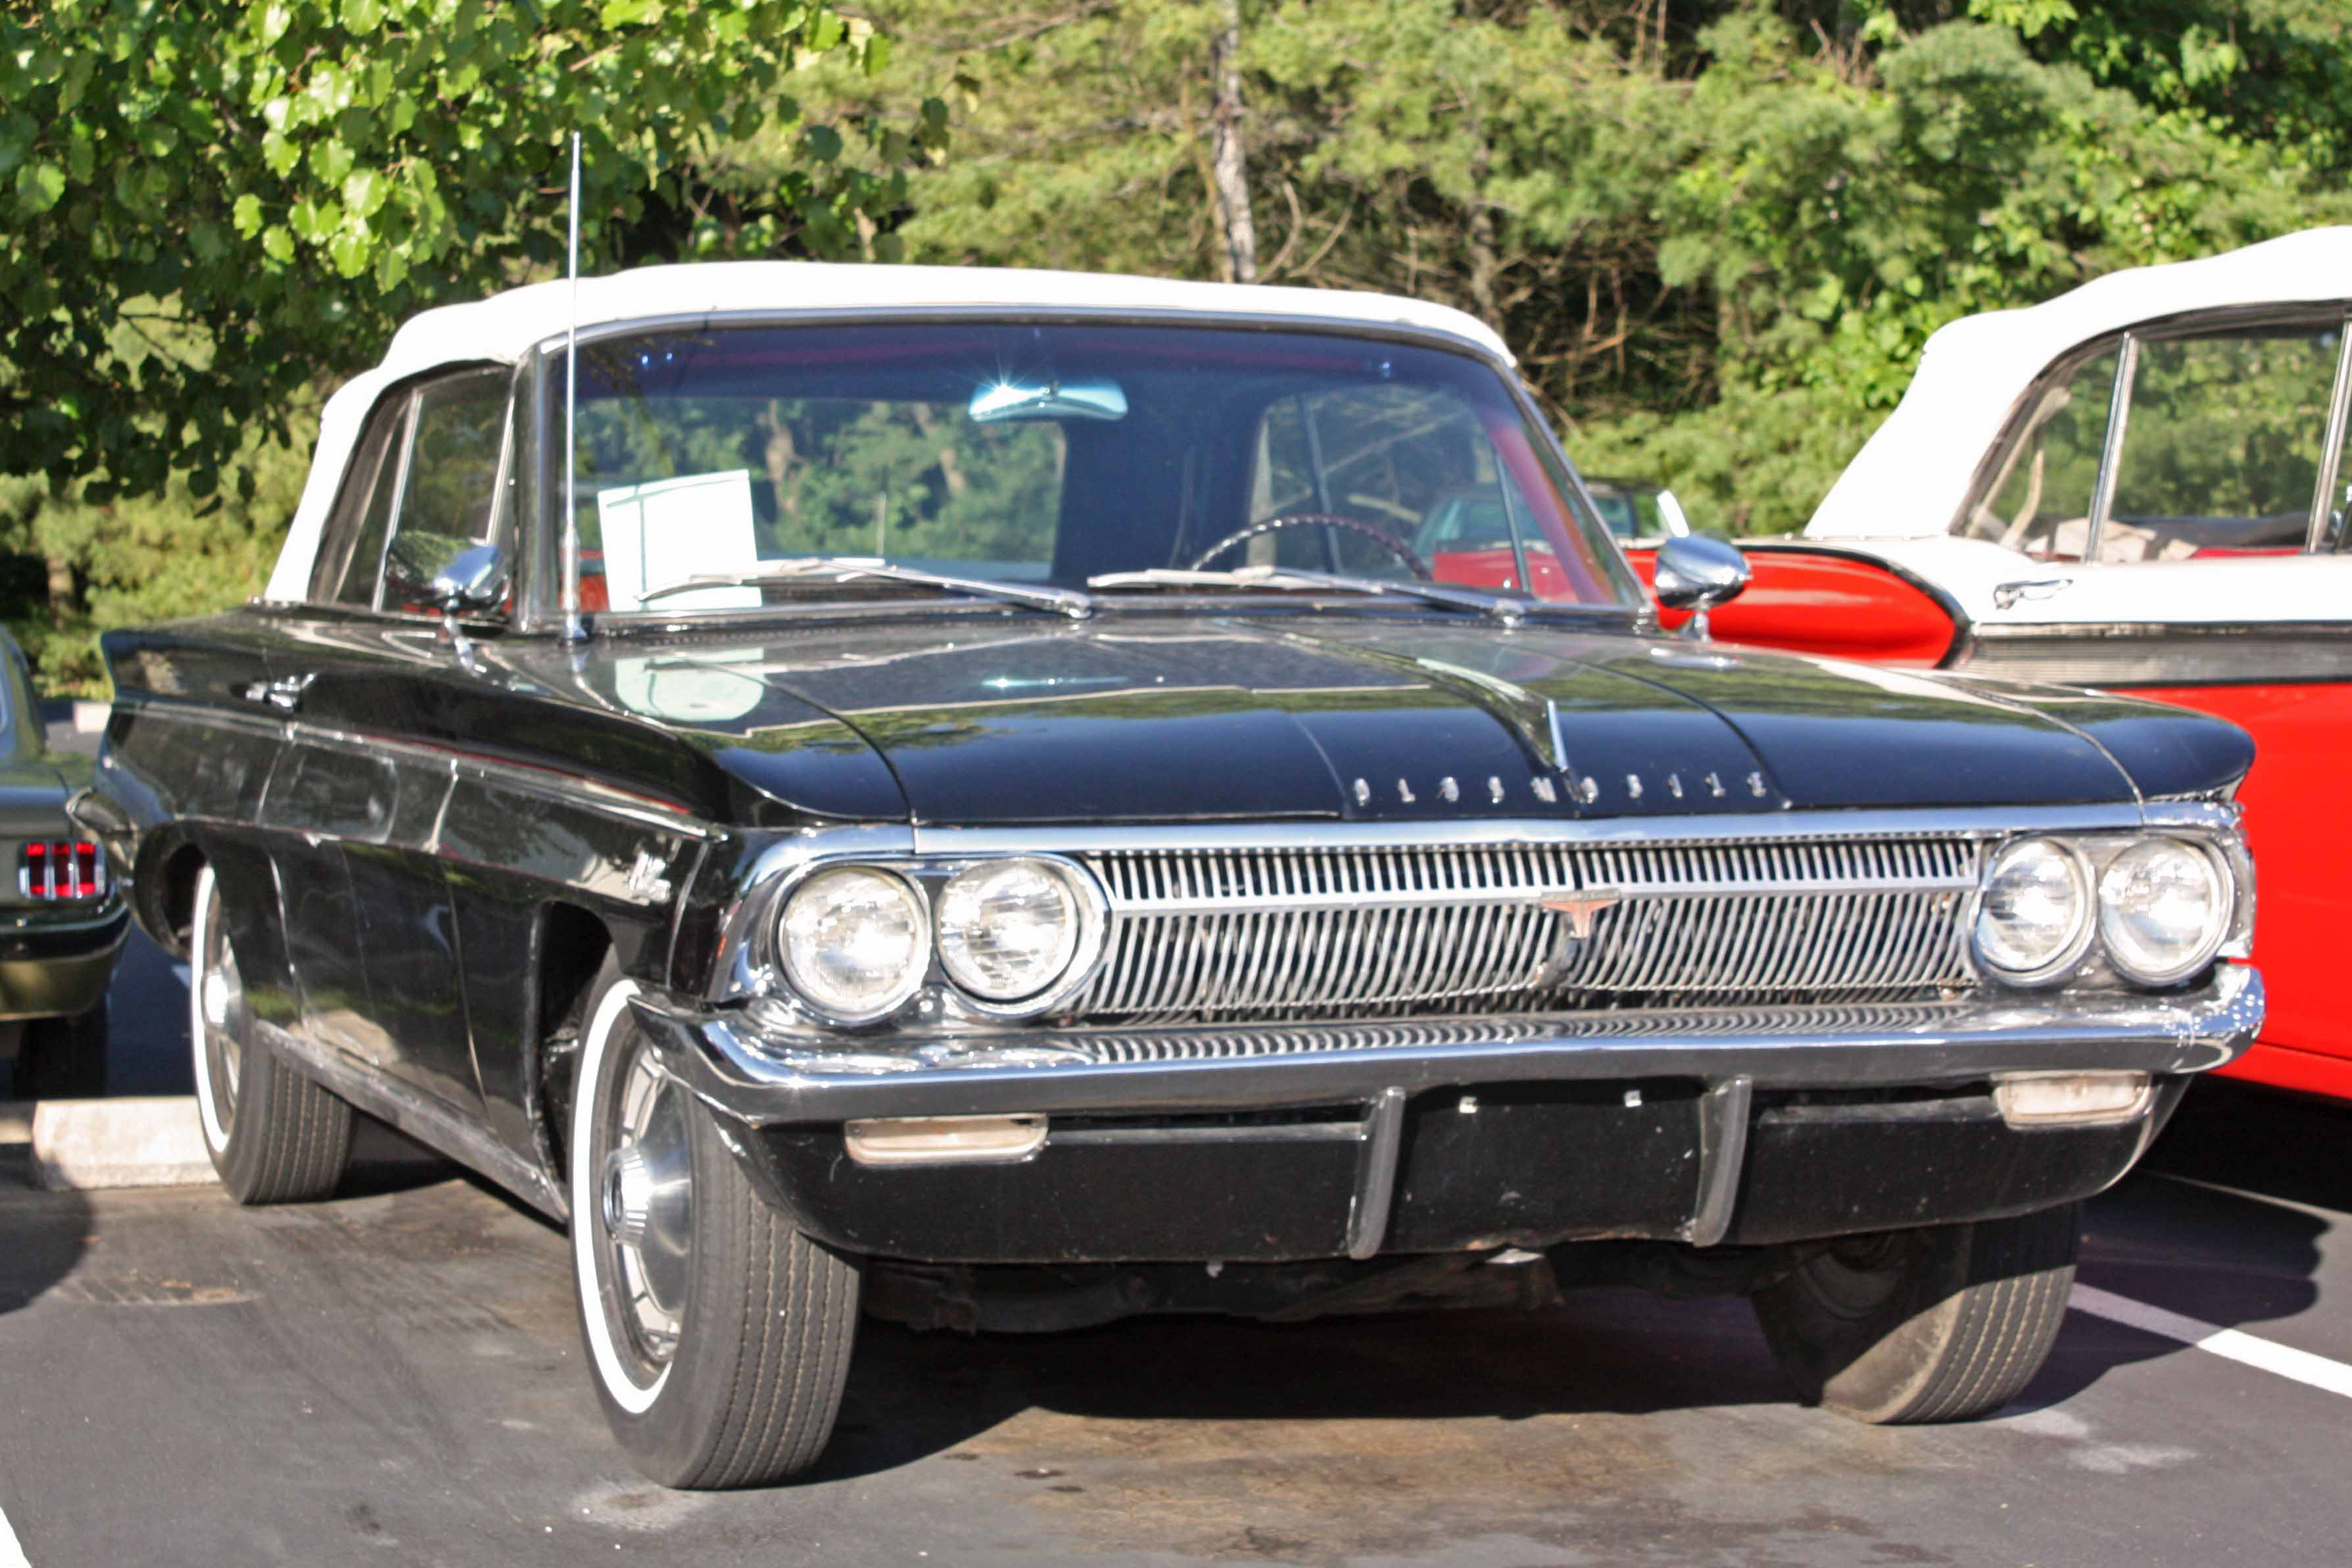 oldsmobile cutlass related images,start 350 - WeiLi